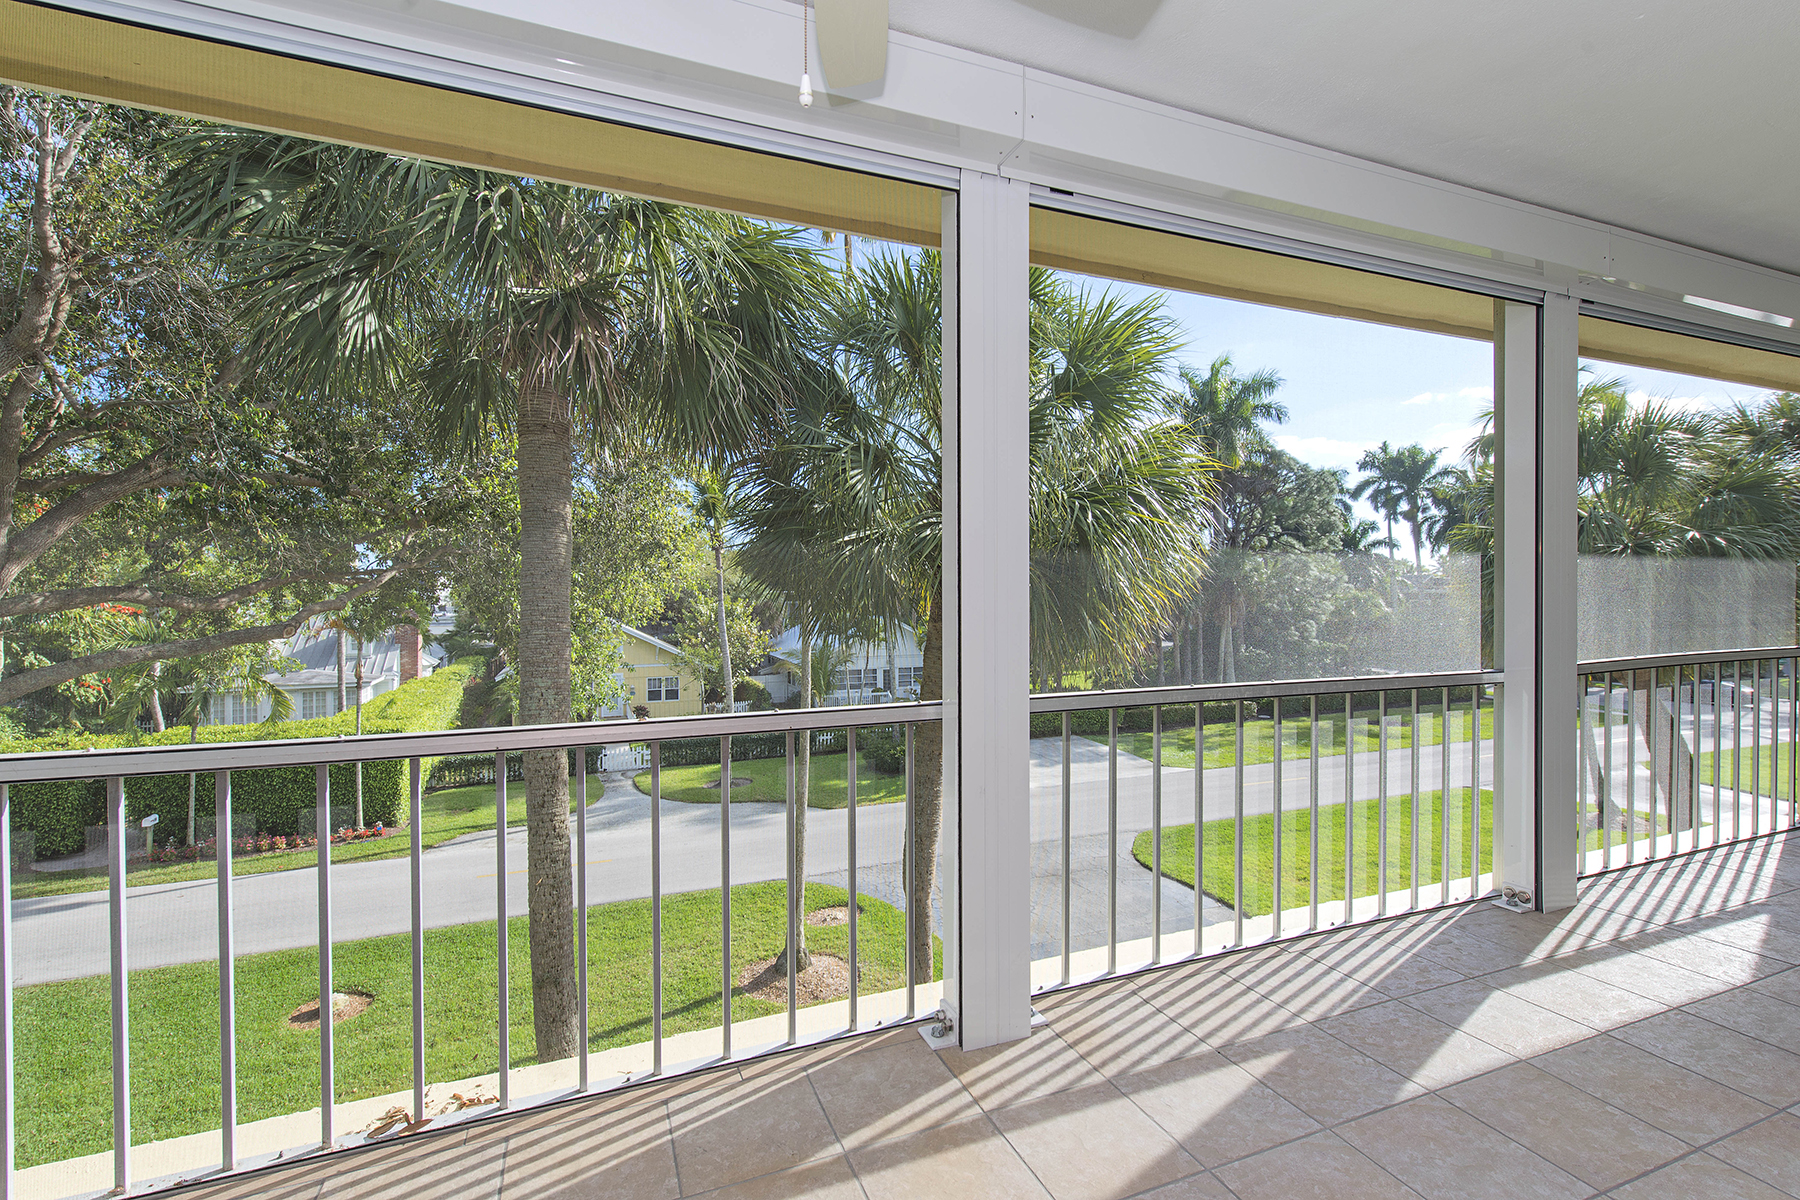 Condominium for Sale at OLDE NAPLES - SOUTH BEACH CLUB 1051 3rd St S 308 Naples, Florida 34102 United States